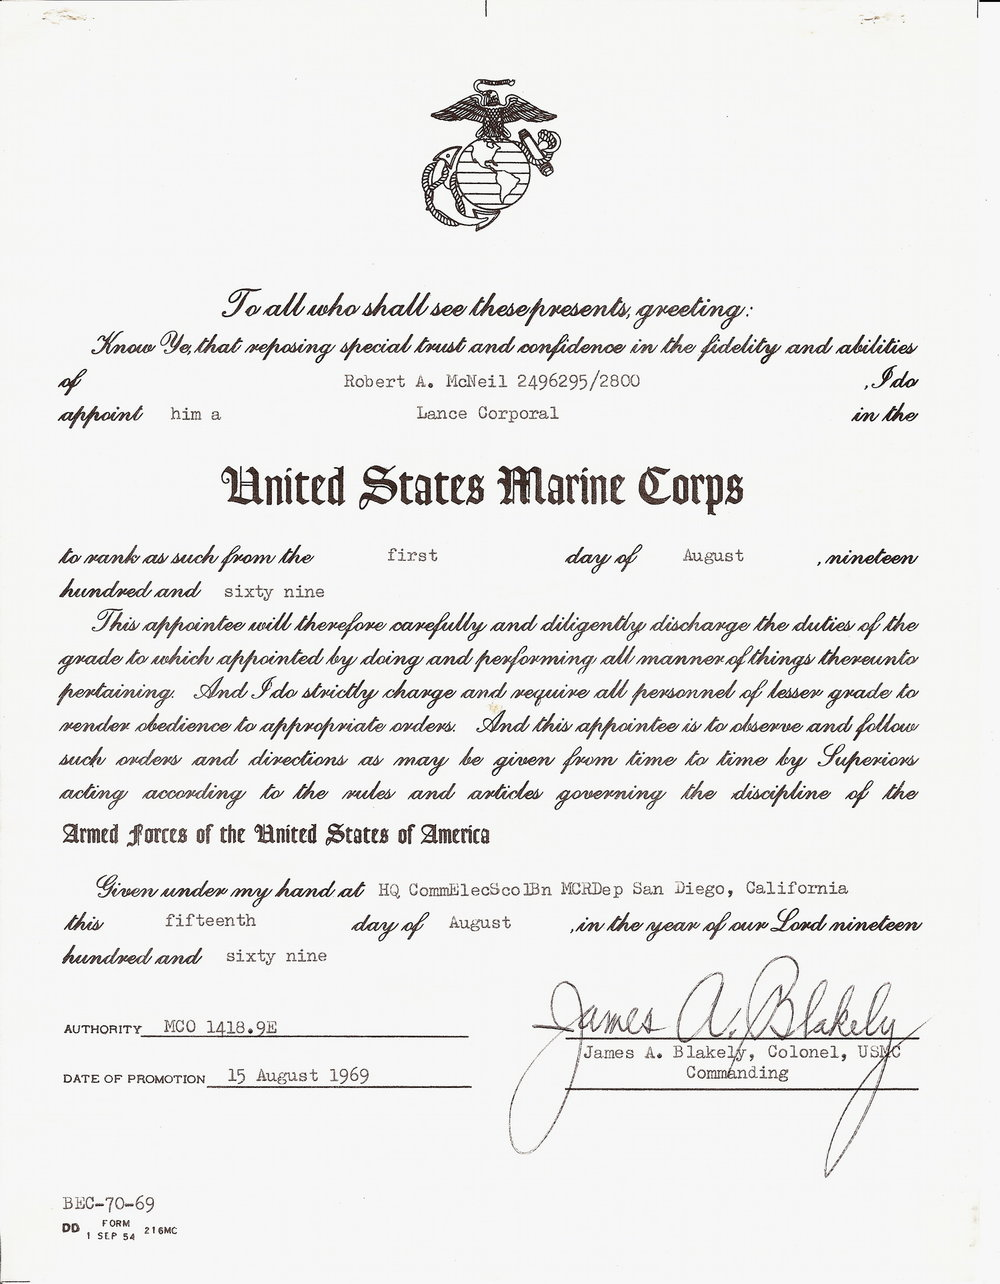 Bob McNeil - August 15, 1969 - Age 20 - U.S. Marine Corps - Promotion to Lance Corporal (E3) - San Diego, California